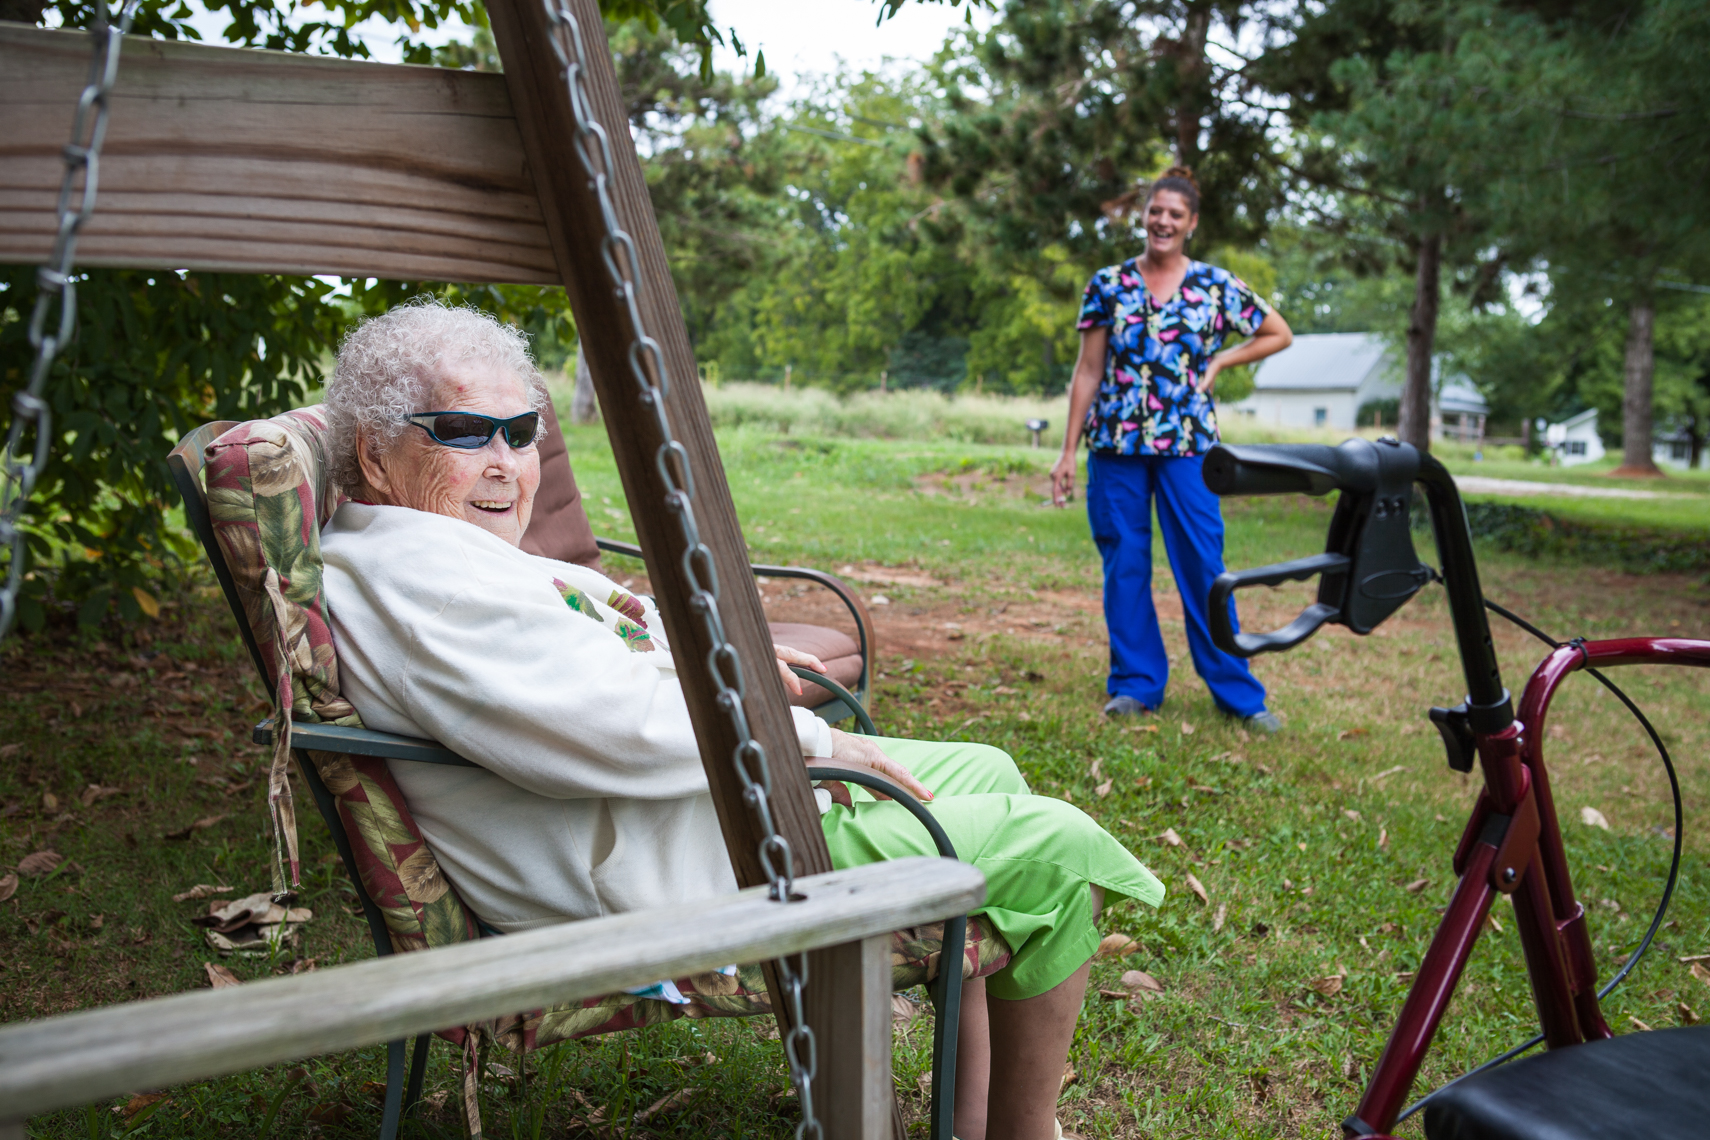 Elderly woman on a swing, wearing funny sunglasses, with her caregiver nearby. Smiling, laughing, happy, healthcare, aid, worker, work, at work, costs, medical, physical therapy, disability, rehabilitation, Nashville and Washington, DC, editorial photographer photojournalist, reportage, elderly, healthcare, health, worker, senior, reportage, aging, mature, portrait, nursing home, home aid worker, women in photography, woman-owned, authentic, Tennessee, TN, medicare, documentary, Nashville editorial photographer photojournalist, Kristina Krug Photography, San Francisco, New Orleans, Chicago, Atlanta, St. Louis, Tennessee, TN, TennCare, medicare, documentary